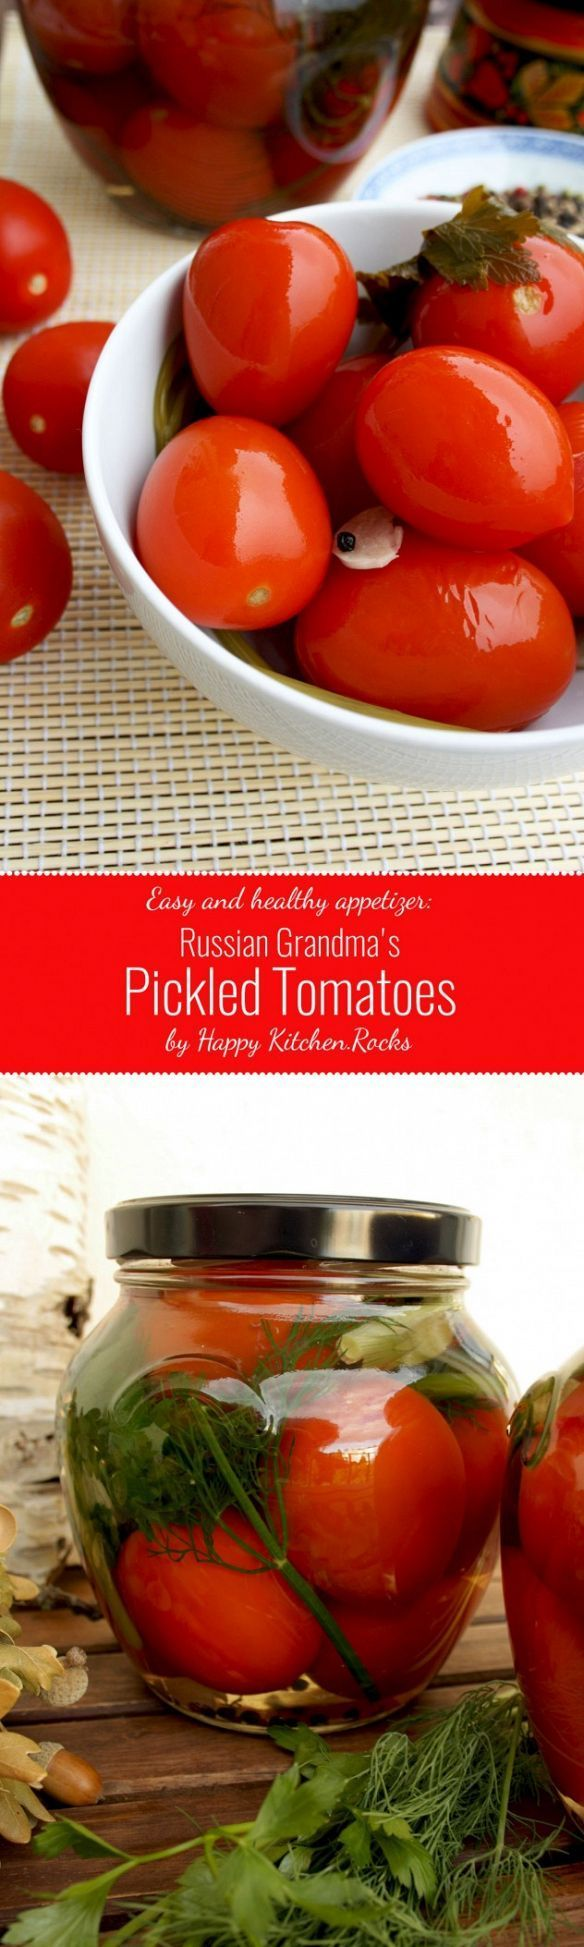 Russian-style pickled tomatoes: healthy, delicious and super easy to make. 30-min recipe with dill, bay leaves, parsley, garlic, black pepper and salt. Raw, gluten-free, low-caloric. Great addition to your holiday table!